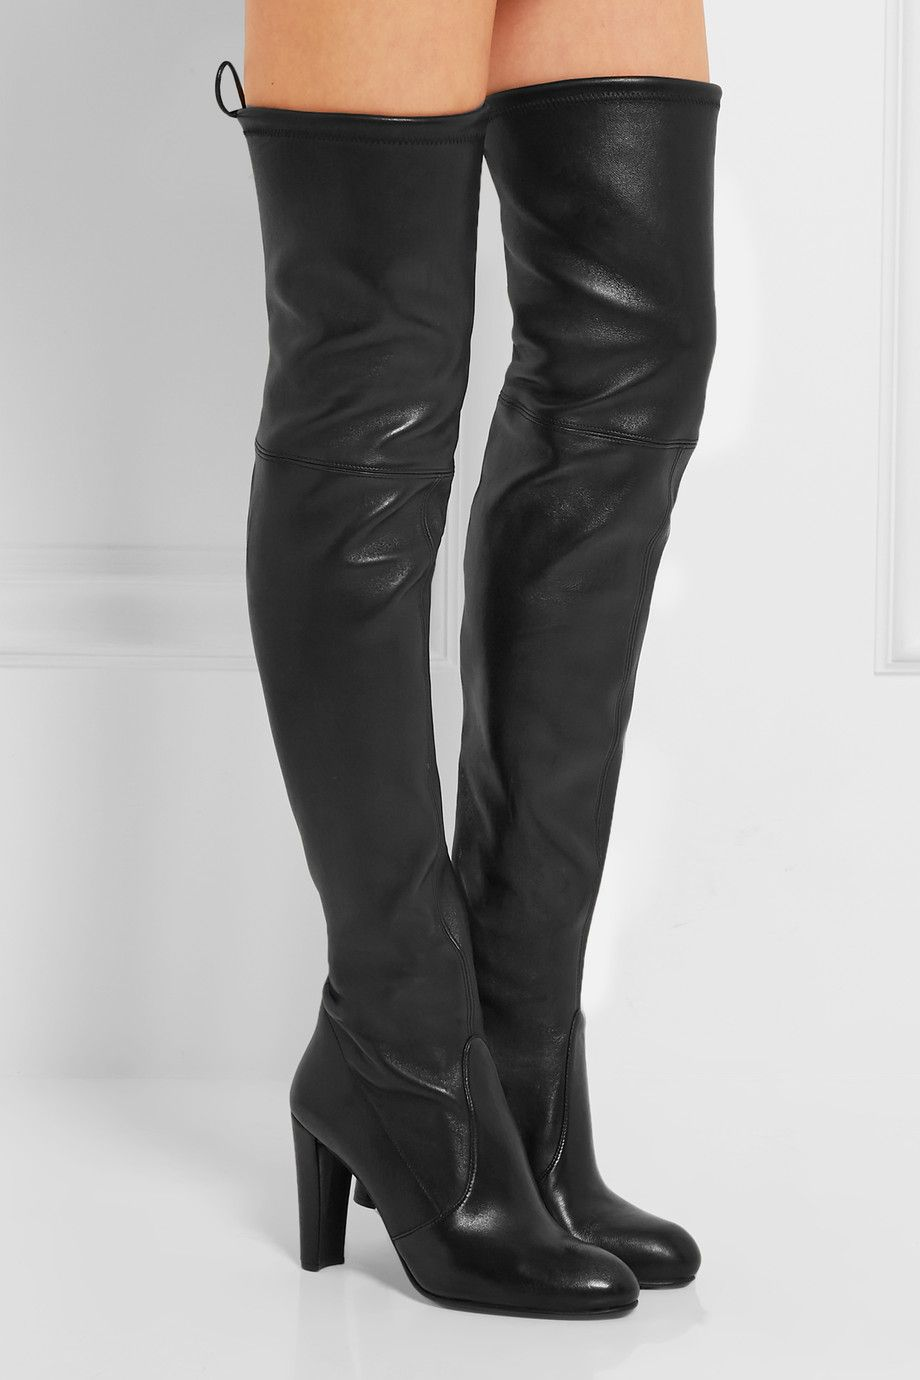 9088e1beadf STUART WEITZMAN Highland leather over-the-knee boots | Desirable ...